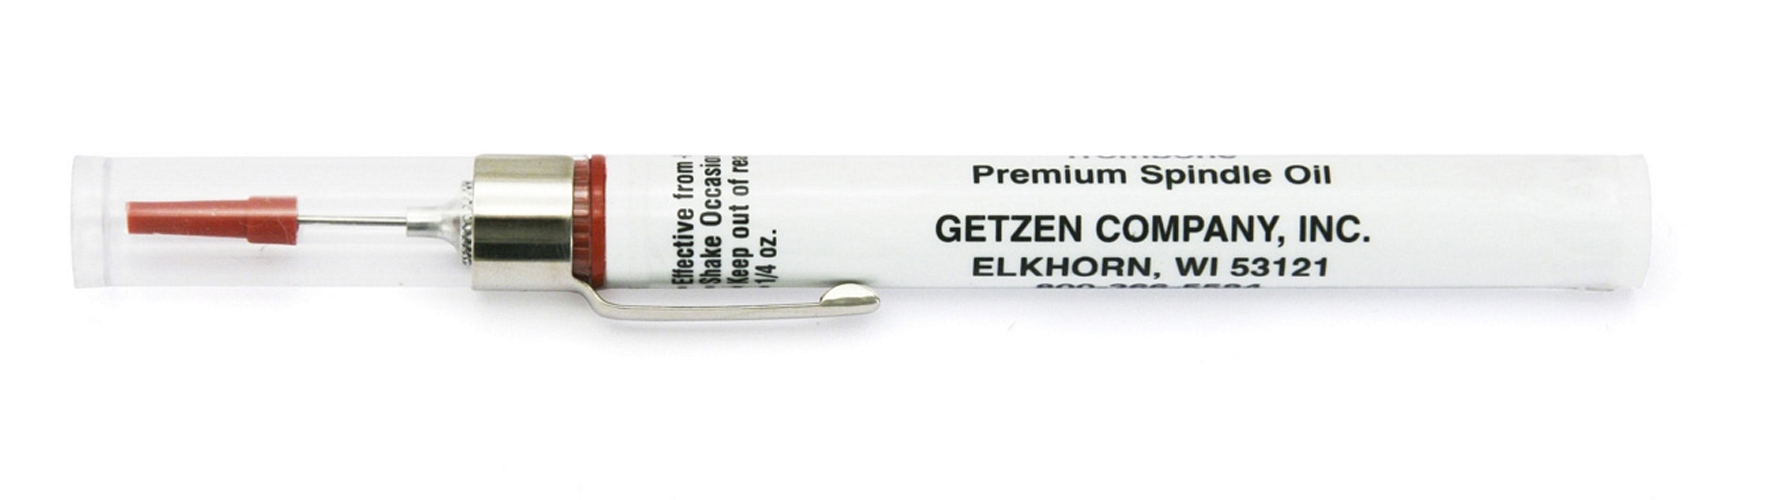 Edwards Getzen Premium Spindle Oil